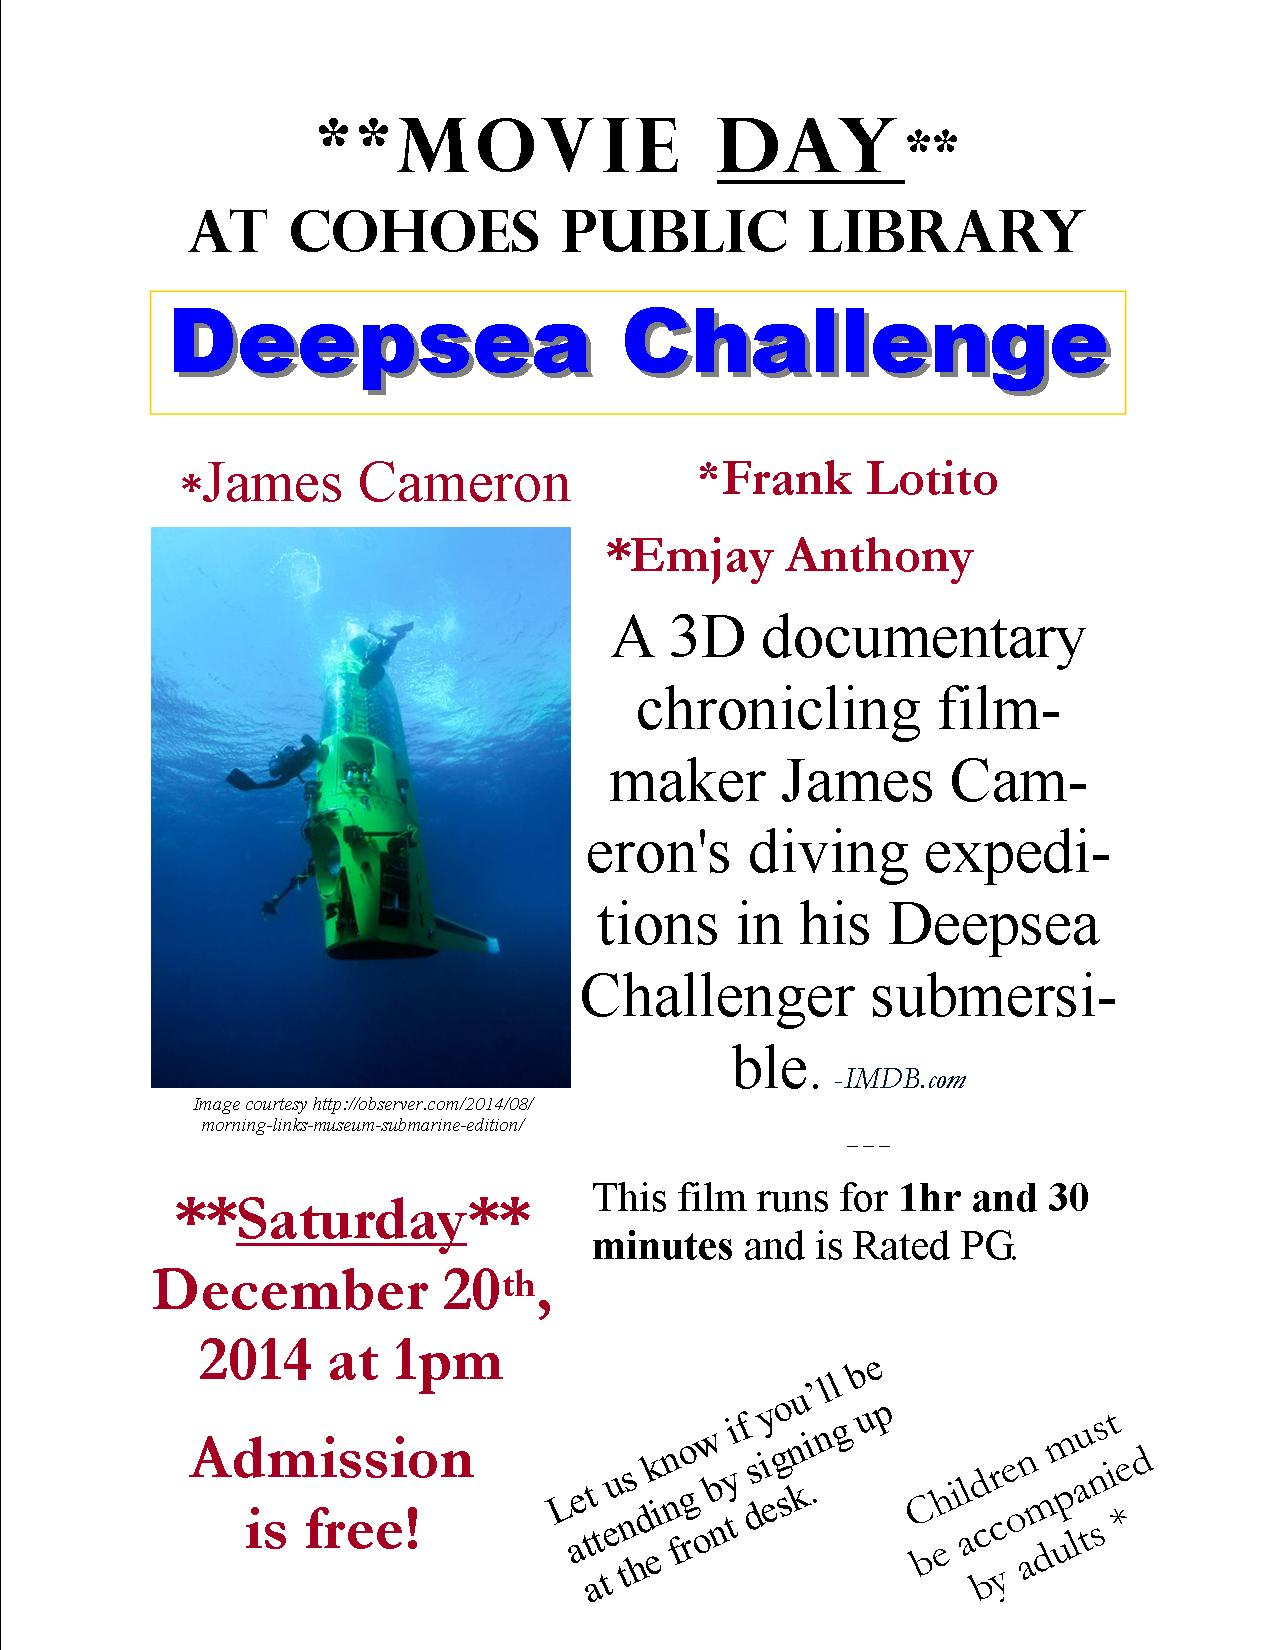 Cohoes Public Library